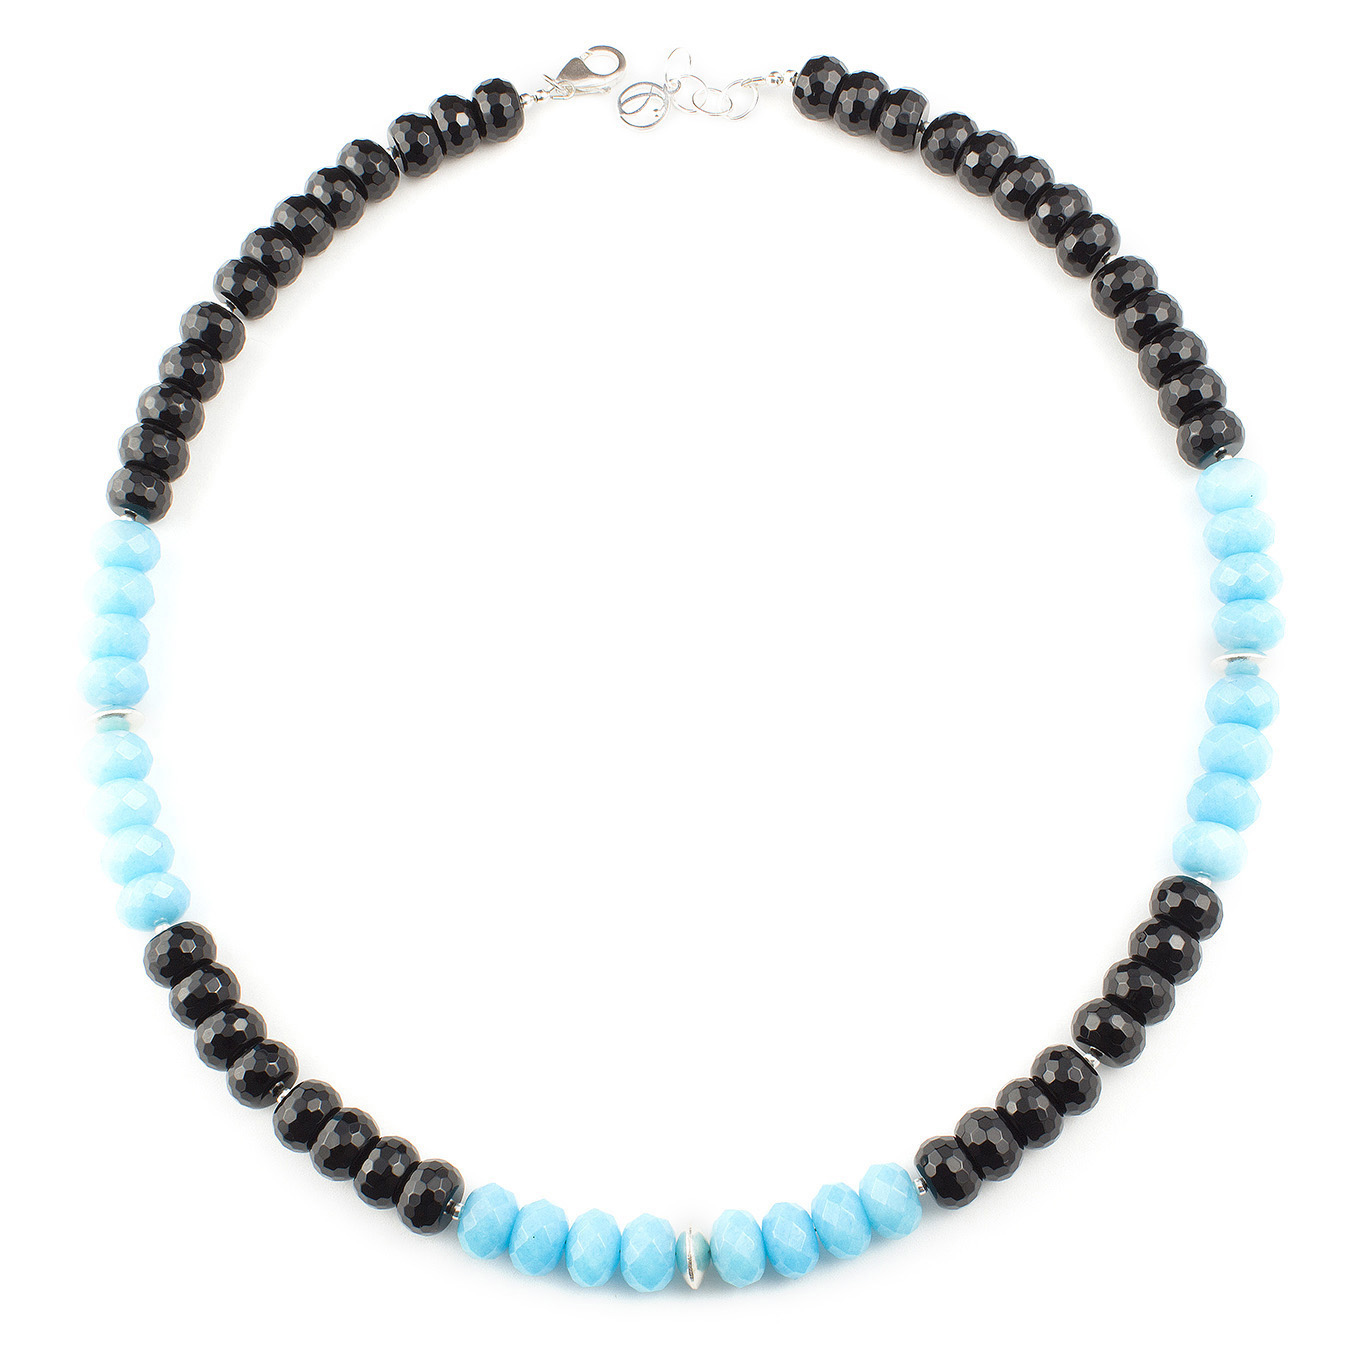 Customized semi-precious gemstone necklace using multi-color jade